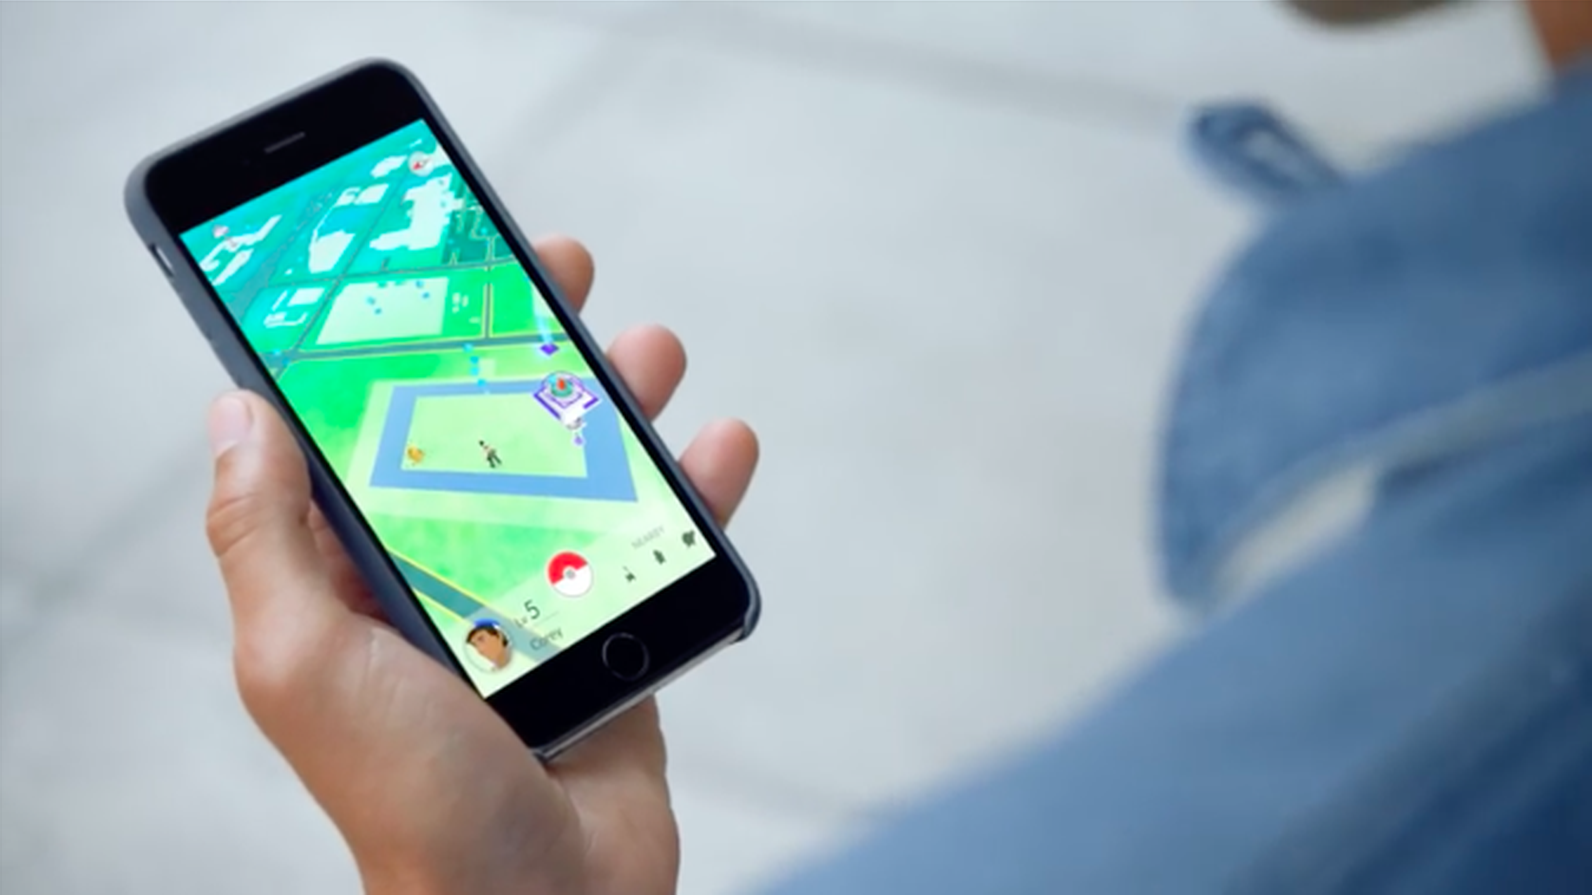 How to perfectly replicate the success of Pokémon Go in three steps